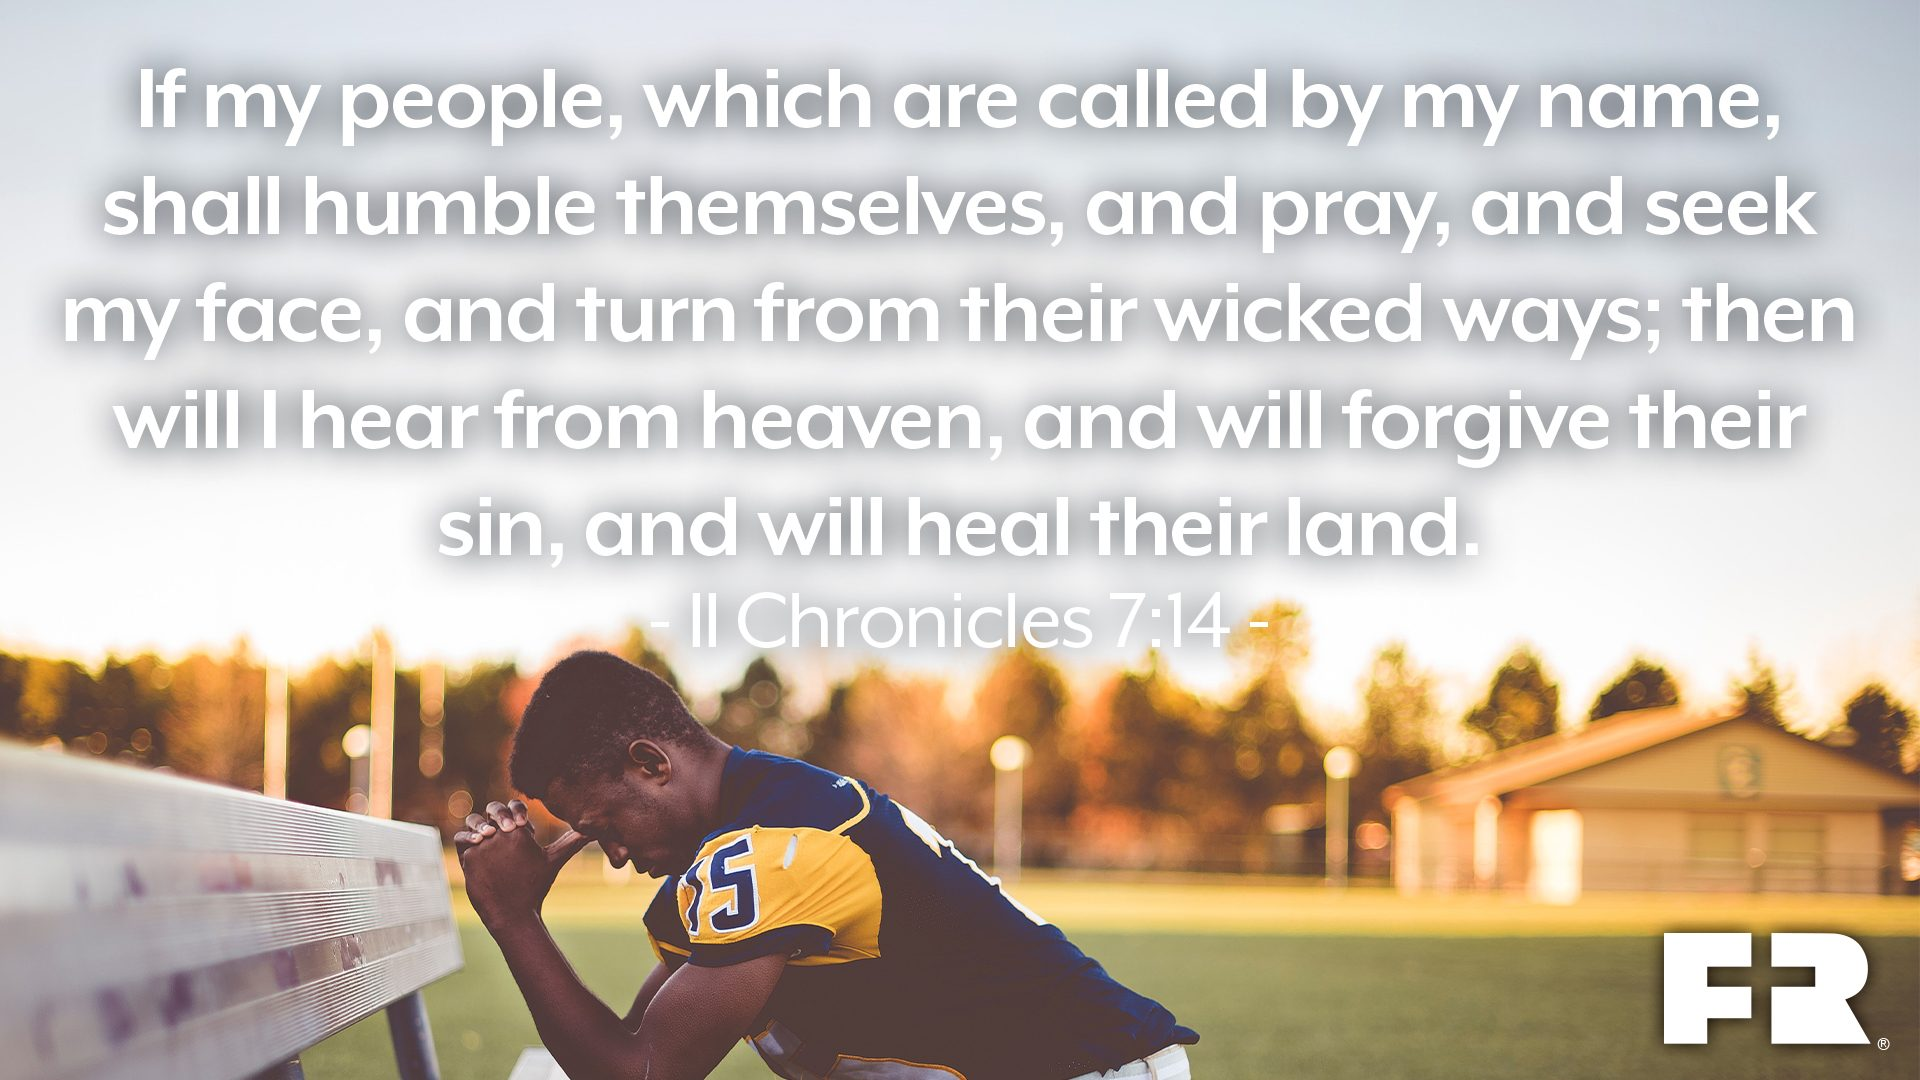 """If my people, which are called by my name, shall humble themselves, and pray, and seek my face, and turn from their wicked ways; then will I hear from heaven, and will forgive their sin, and will heal their land."""